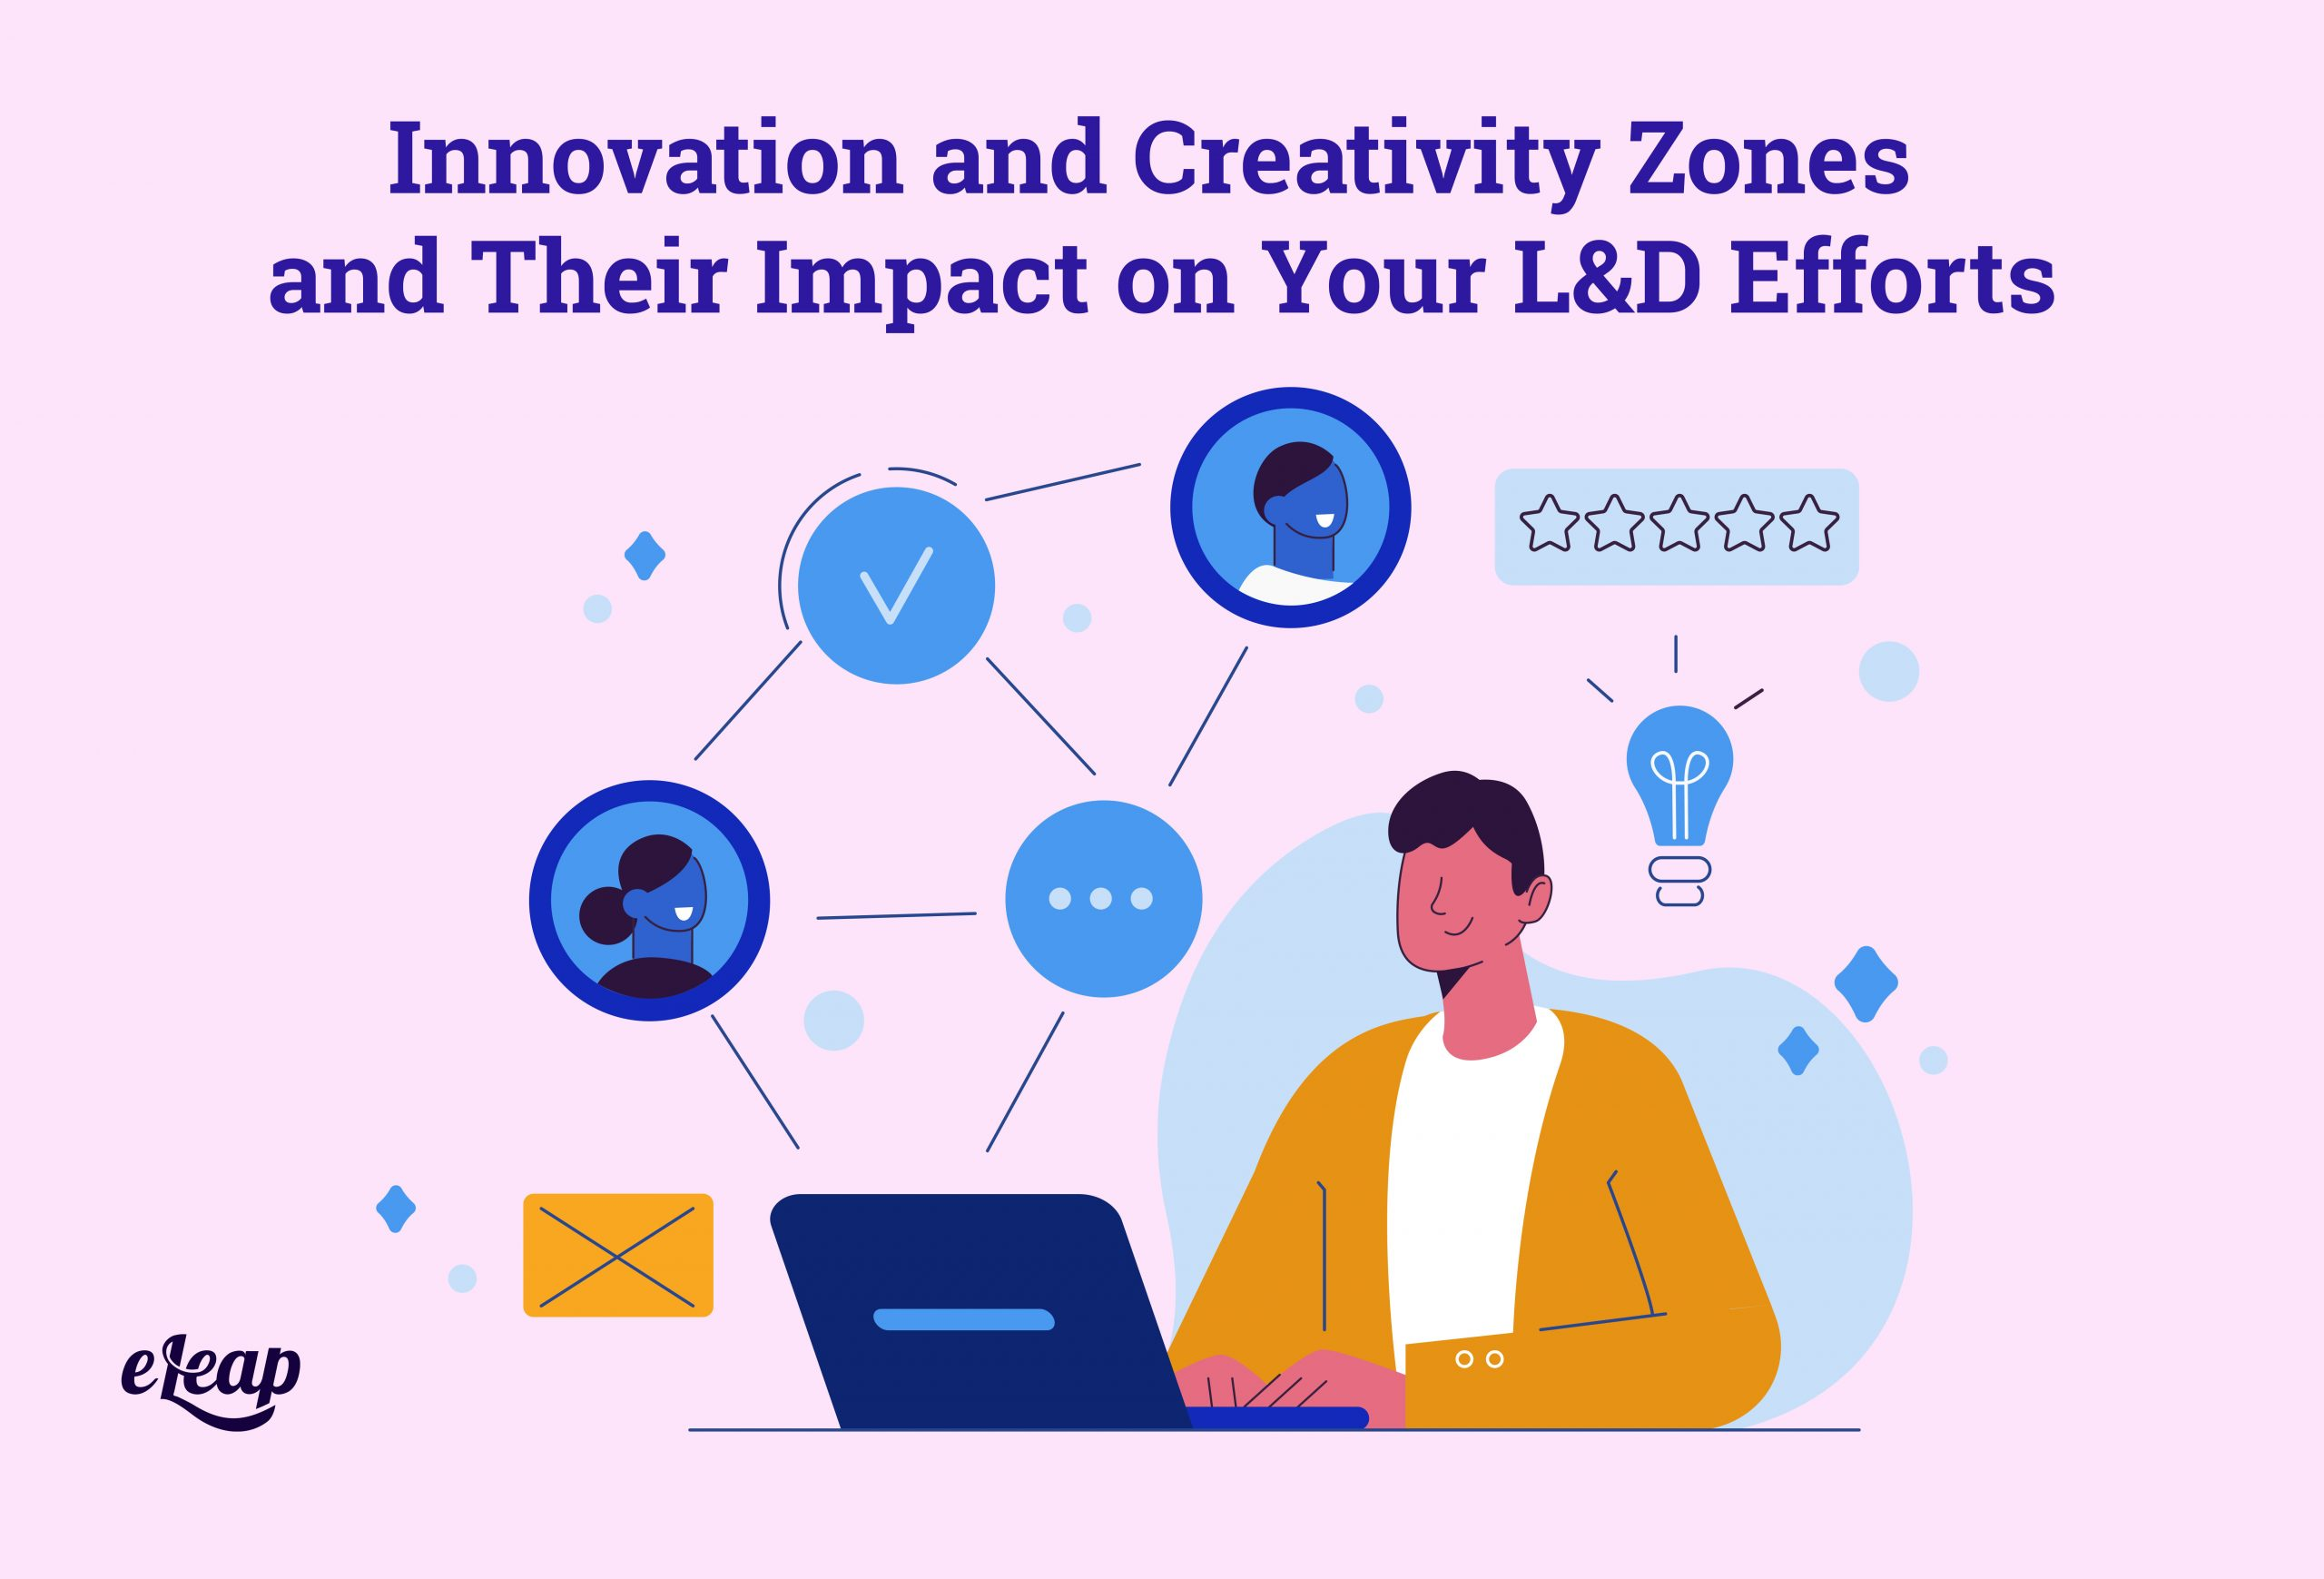 Innovation and Creativity Zones and Their Impact on Your L&D Efforts